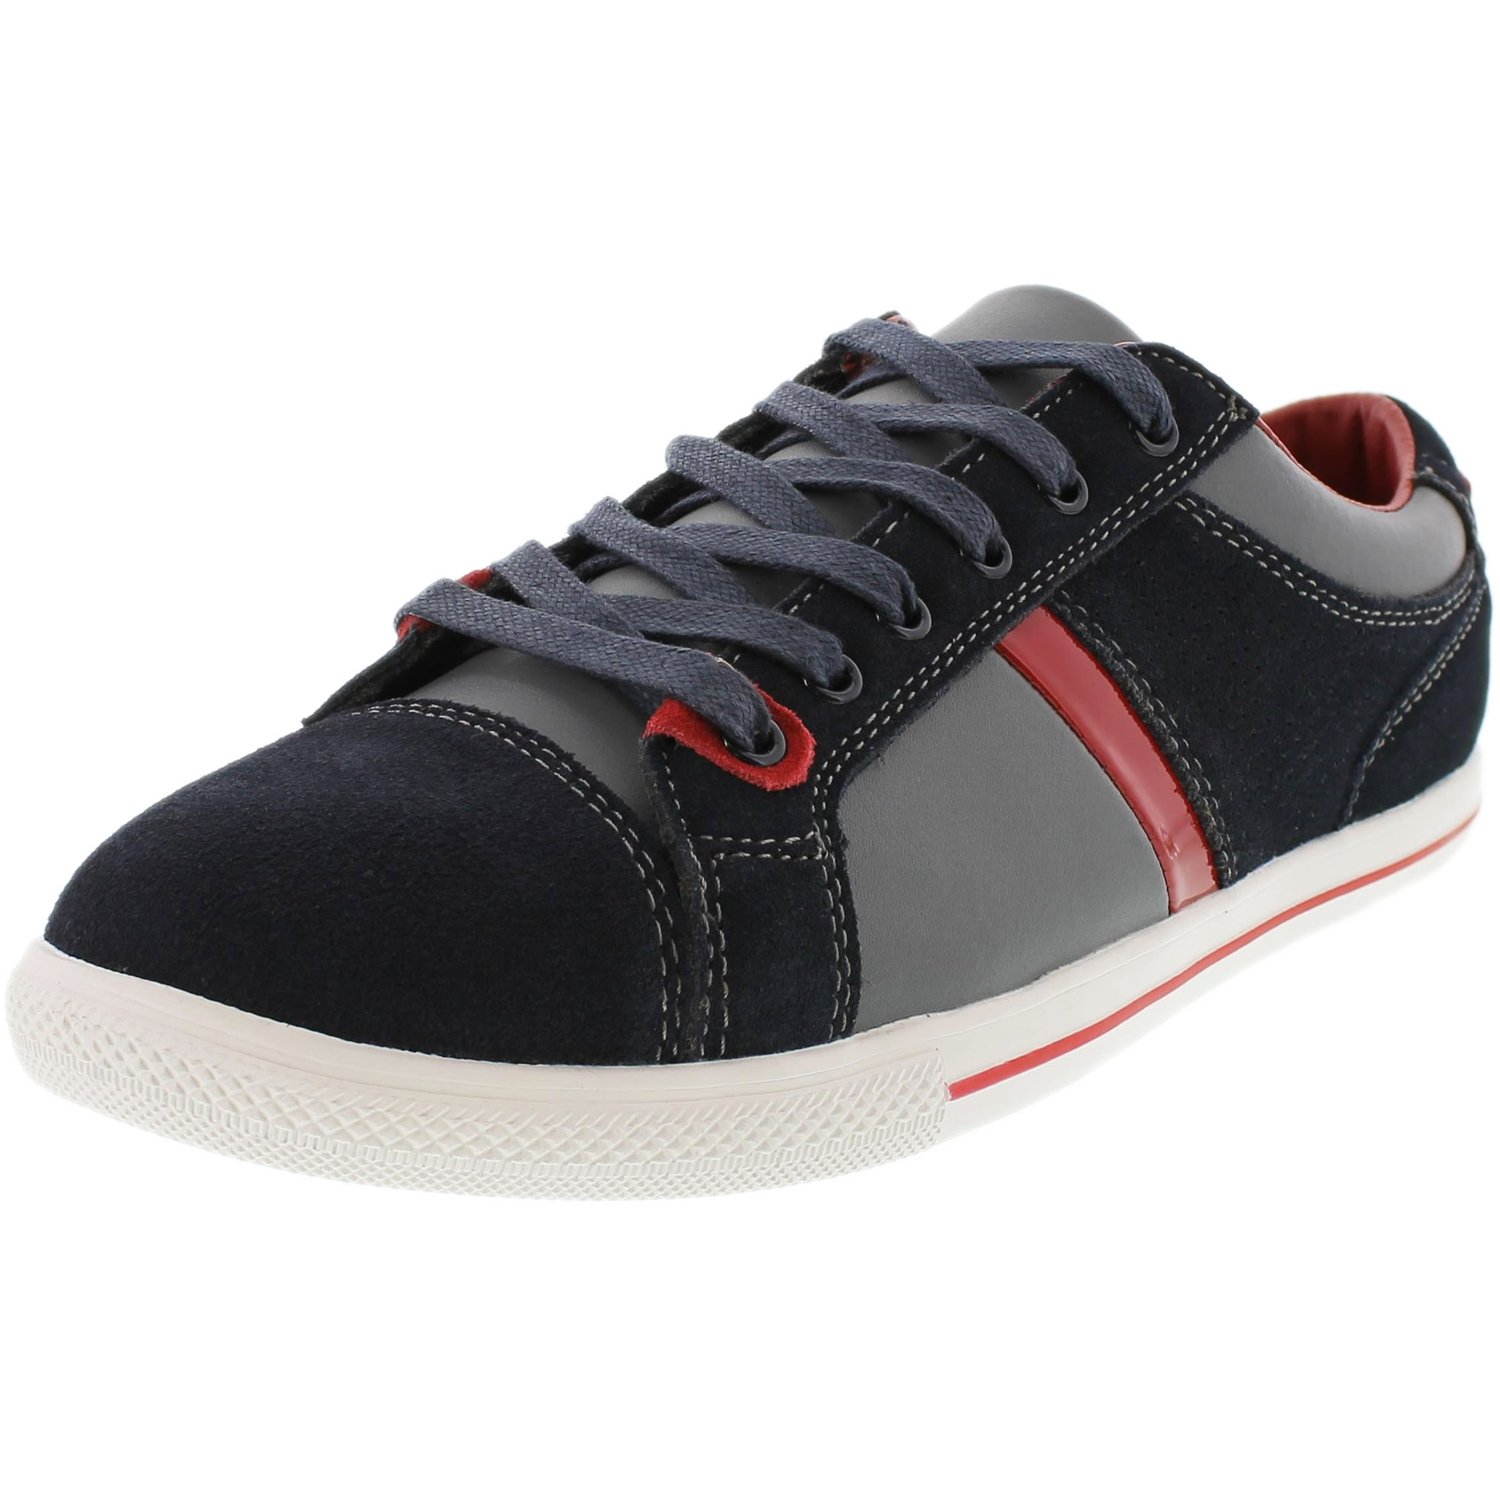 Kenneth Cole Men's Gone 4 Good Navy Ankle-High Leather Walking Shoe - 7.5M